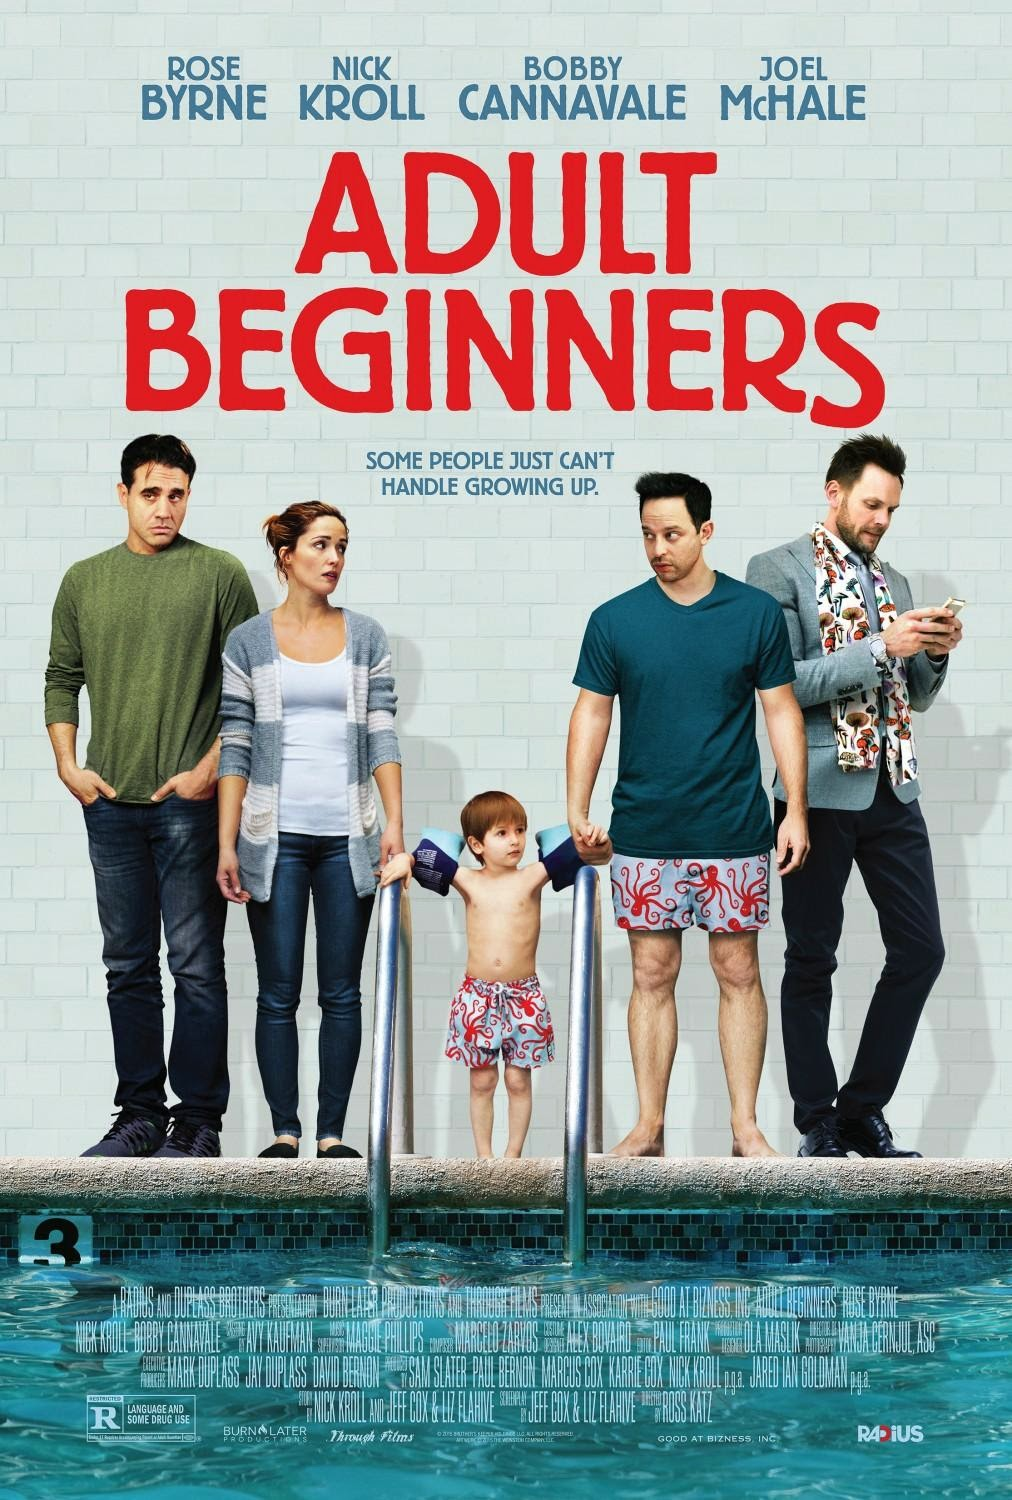 sss Adult Beginners (2014) sss 2015 Full Movie Download